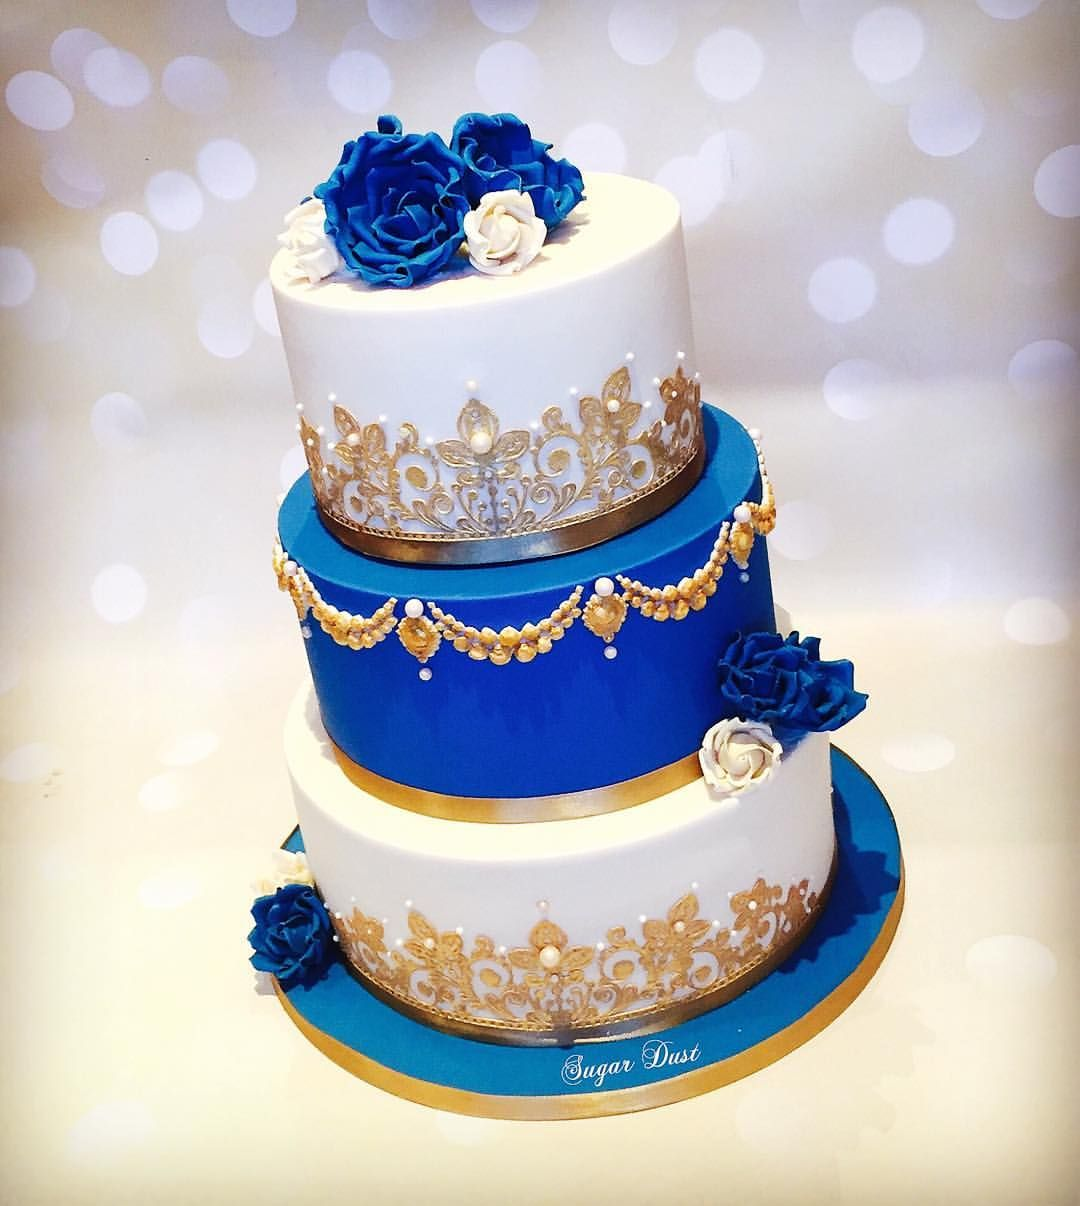 Sugardustbyamina On Instagram A Royal Blue Ivory Cake For The Lovely Lavanya For Saturday S Wedding Many Wedding Cakes Blue Cool Wedding Cakes Blue Cakes